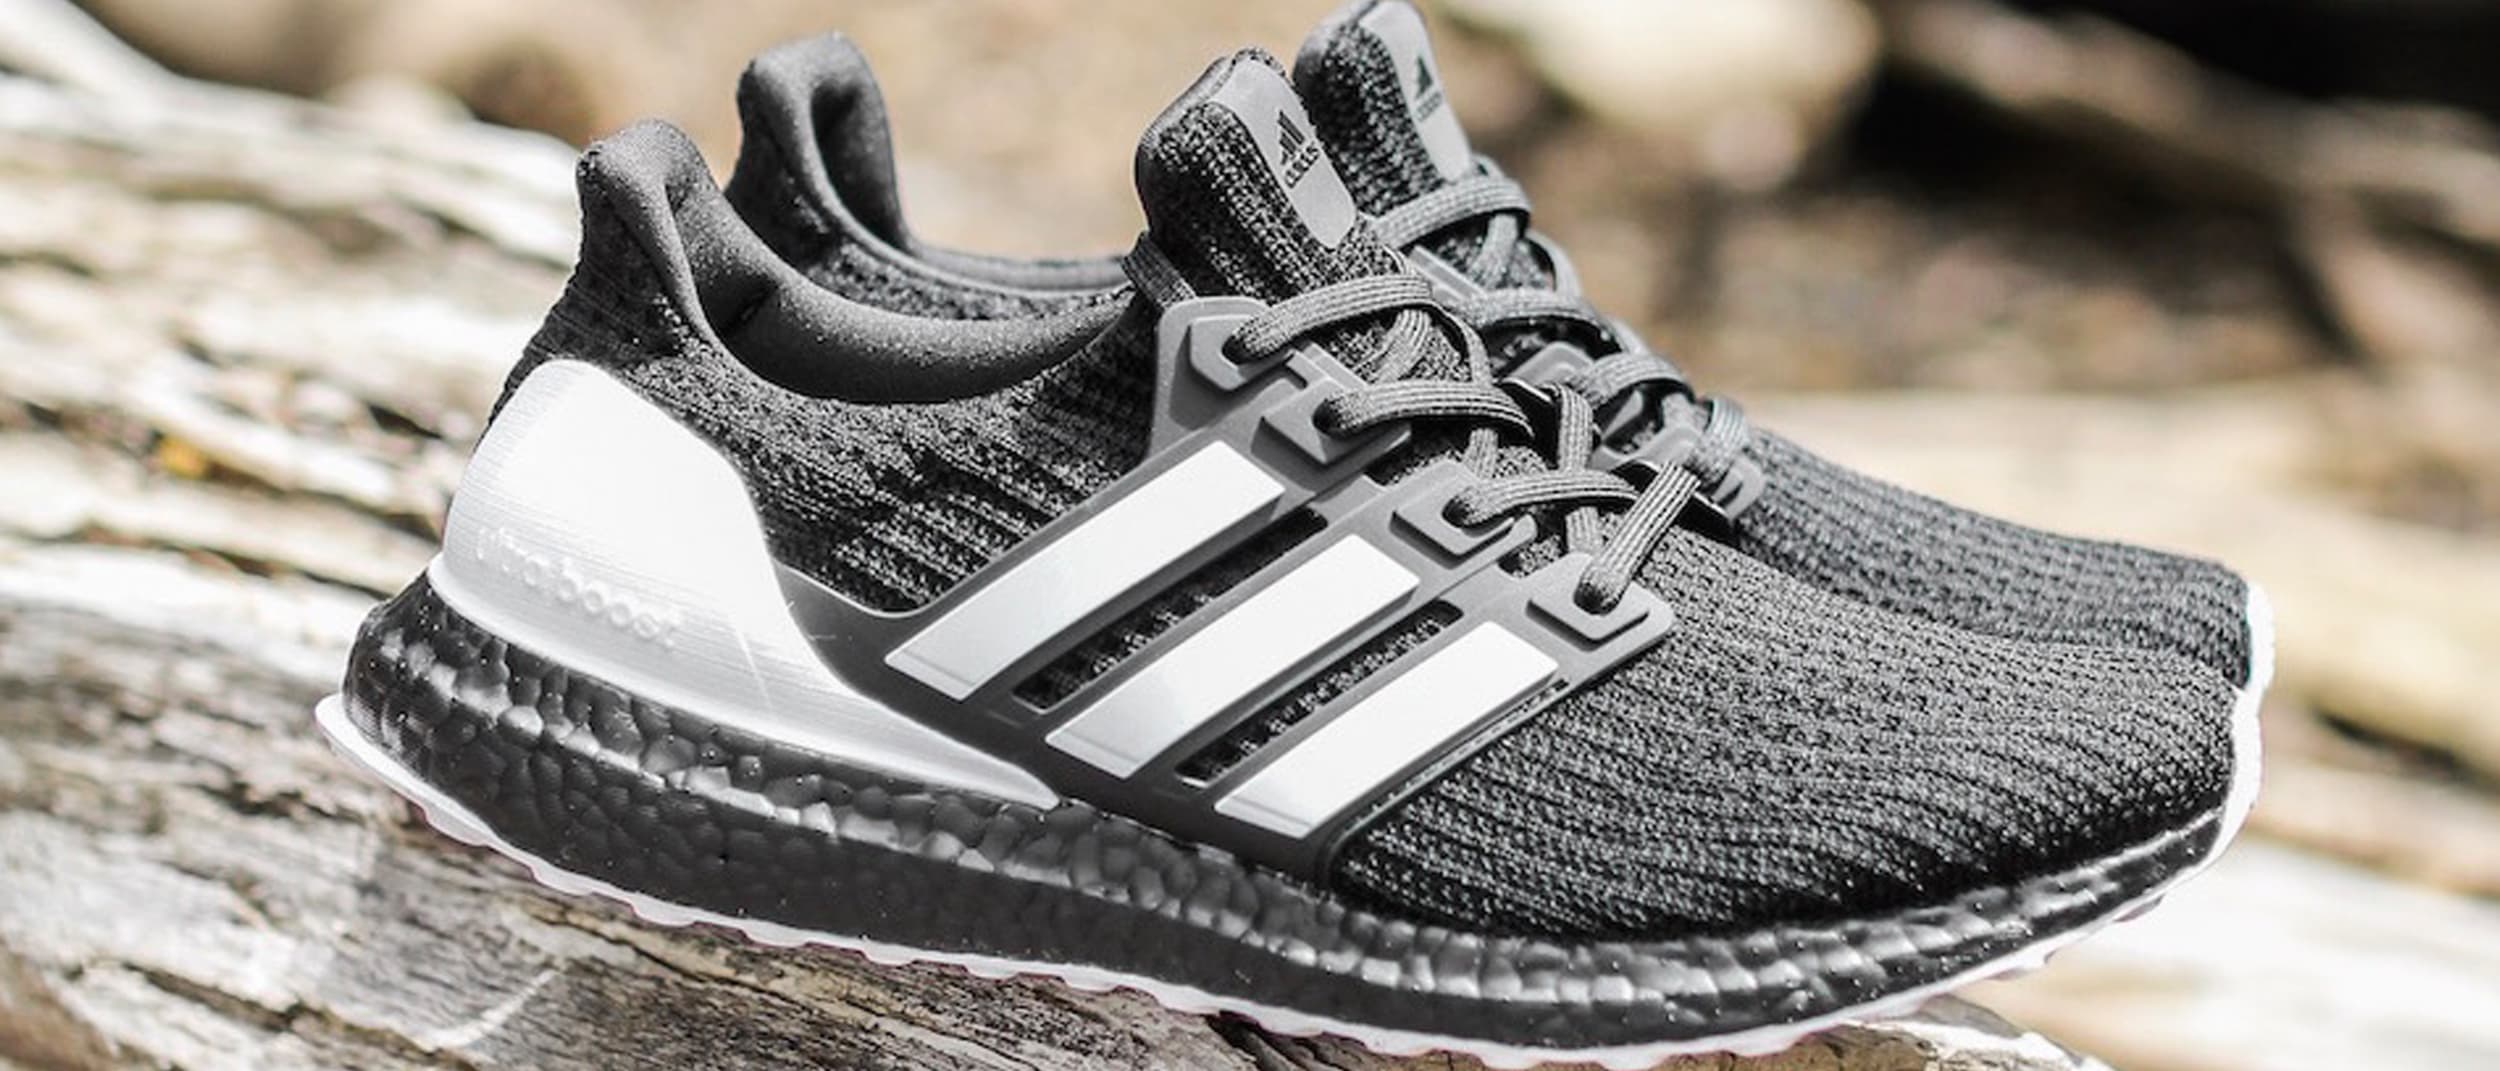 best loved b9109 e3b4d News - JD Sports: The Adidas Ultraboost 4.0 'Orca'